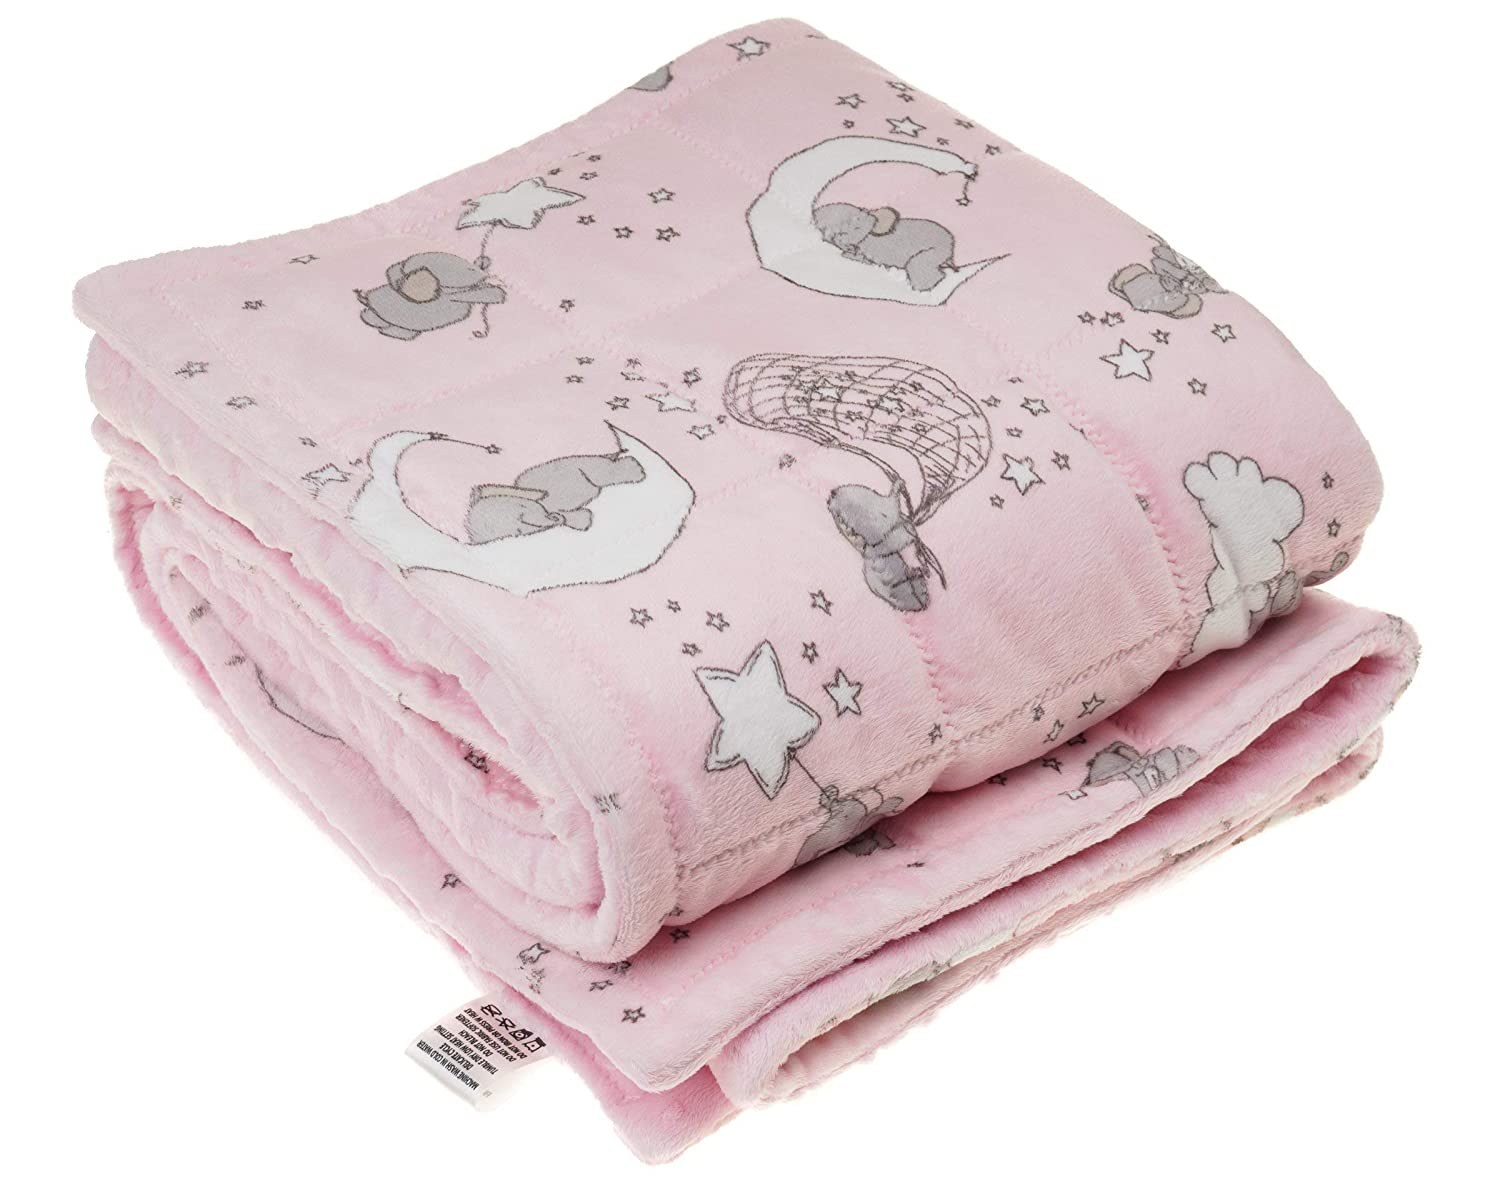 top blanket for kids anxiety sleep better